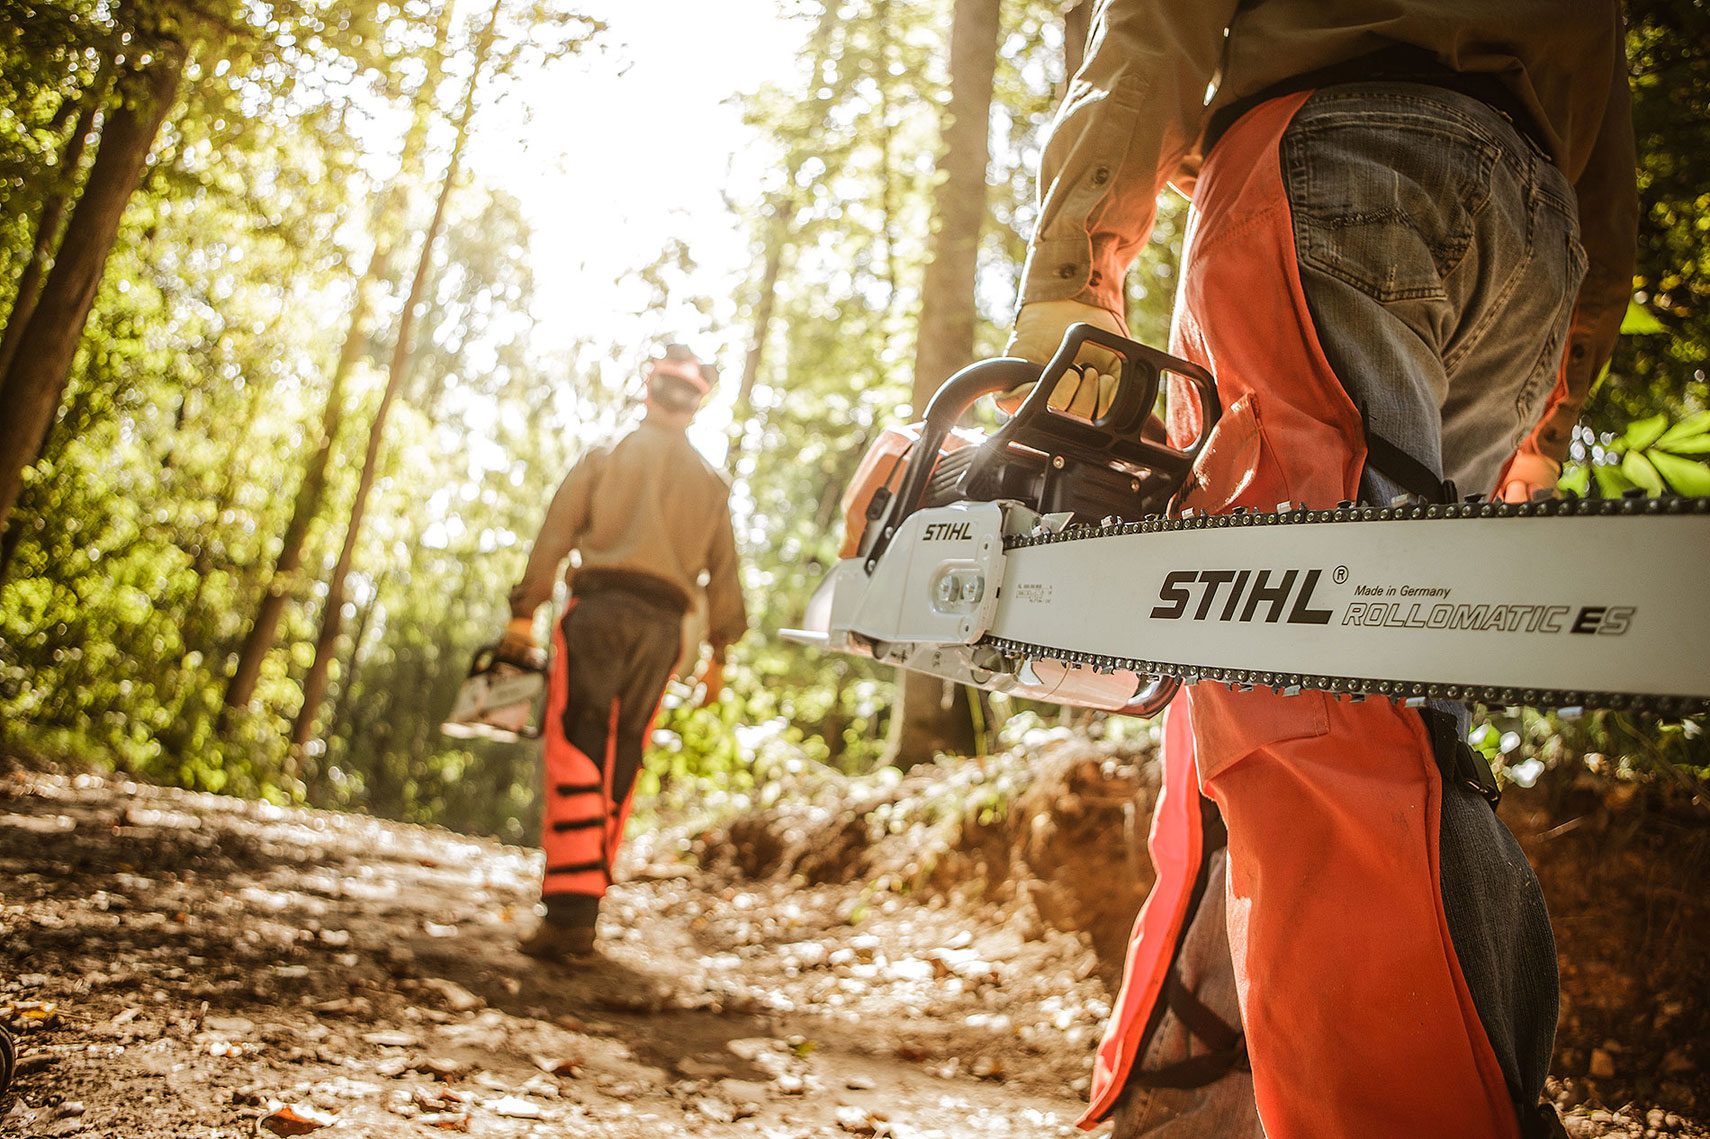 STIHL Chainsaw MS461 | John Fedele Product Photography